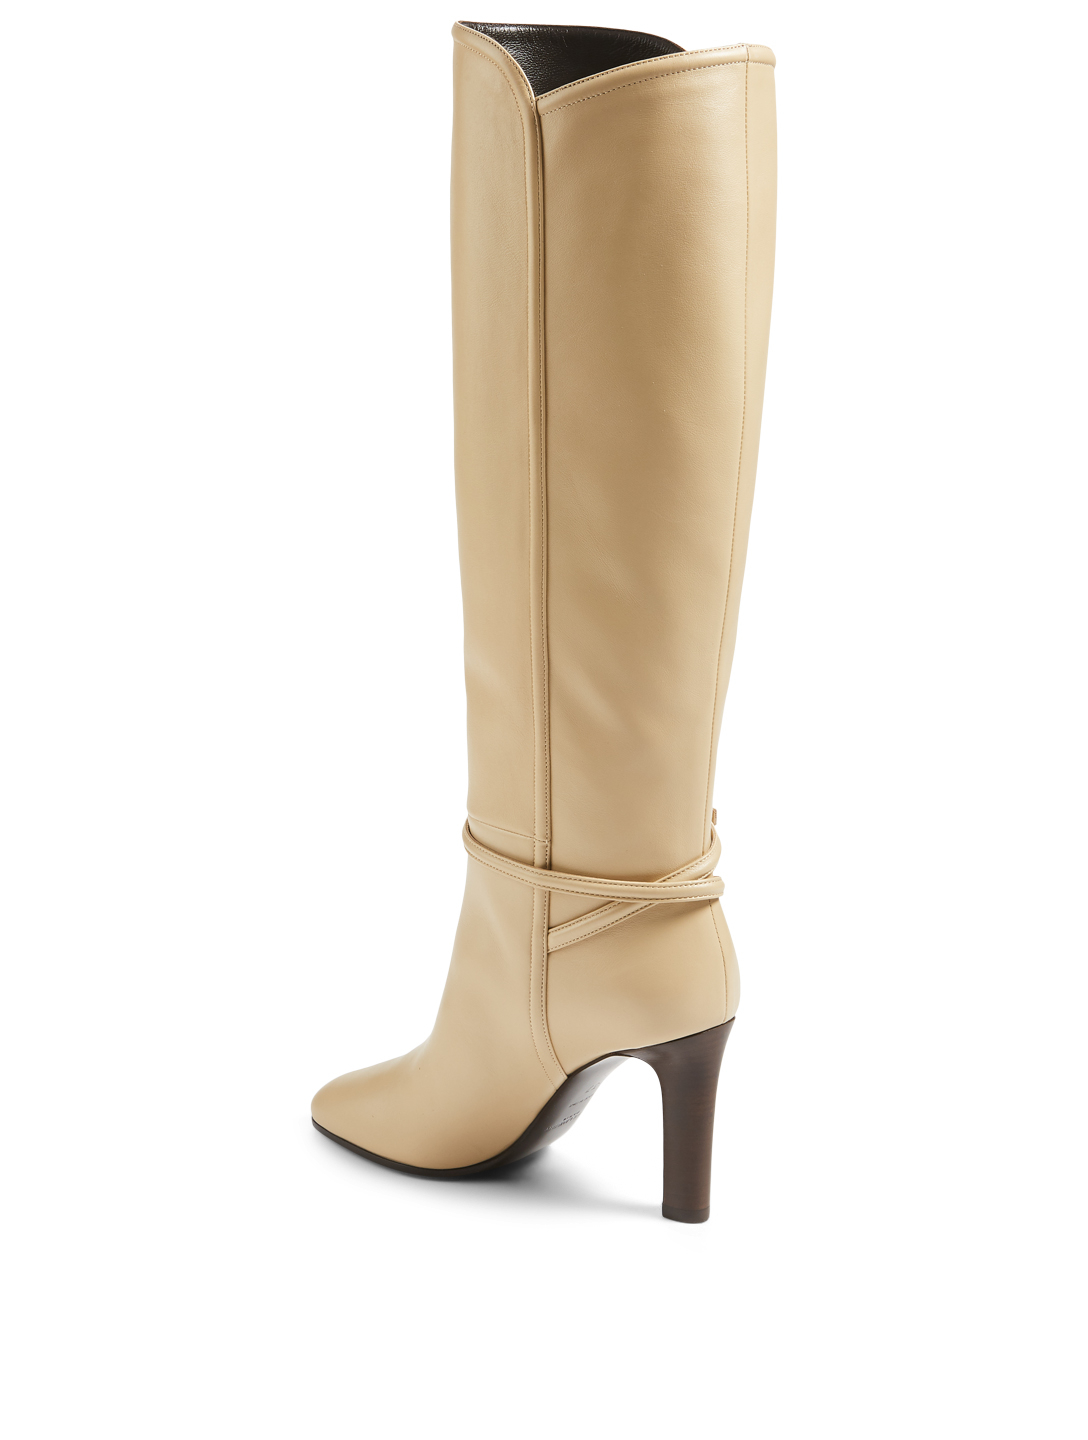 SAINT LAURENT Jane 90 Leather Heeled Knee-High Boots Women's Neutral